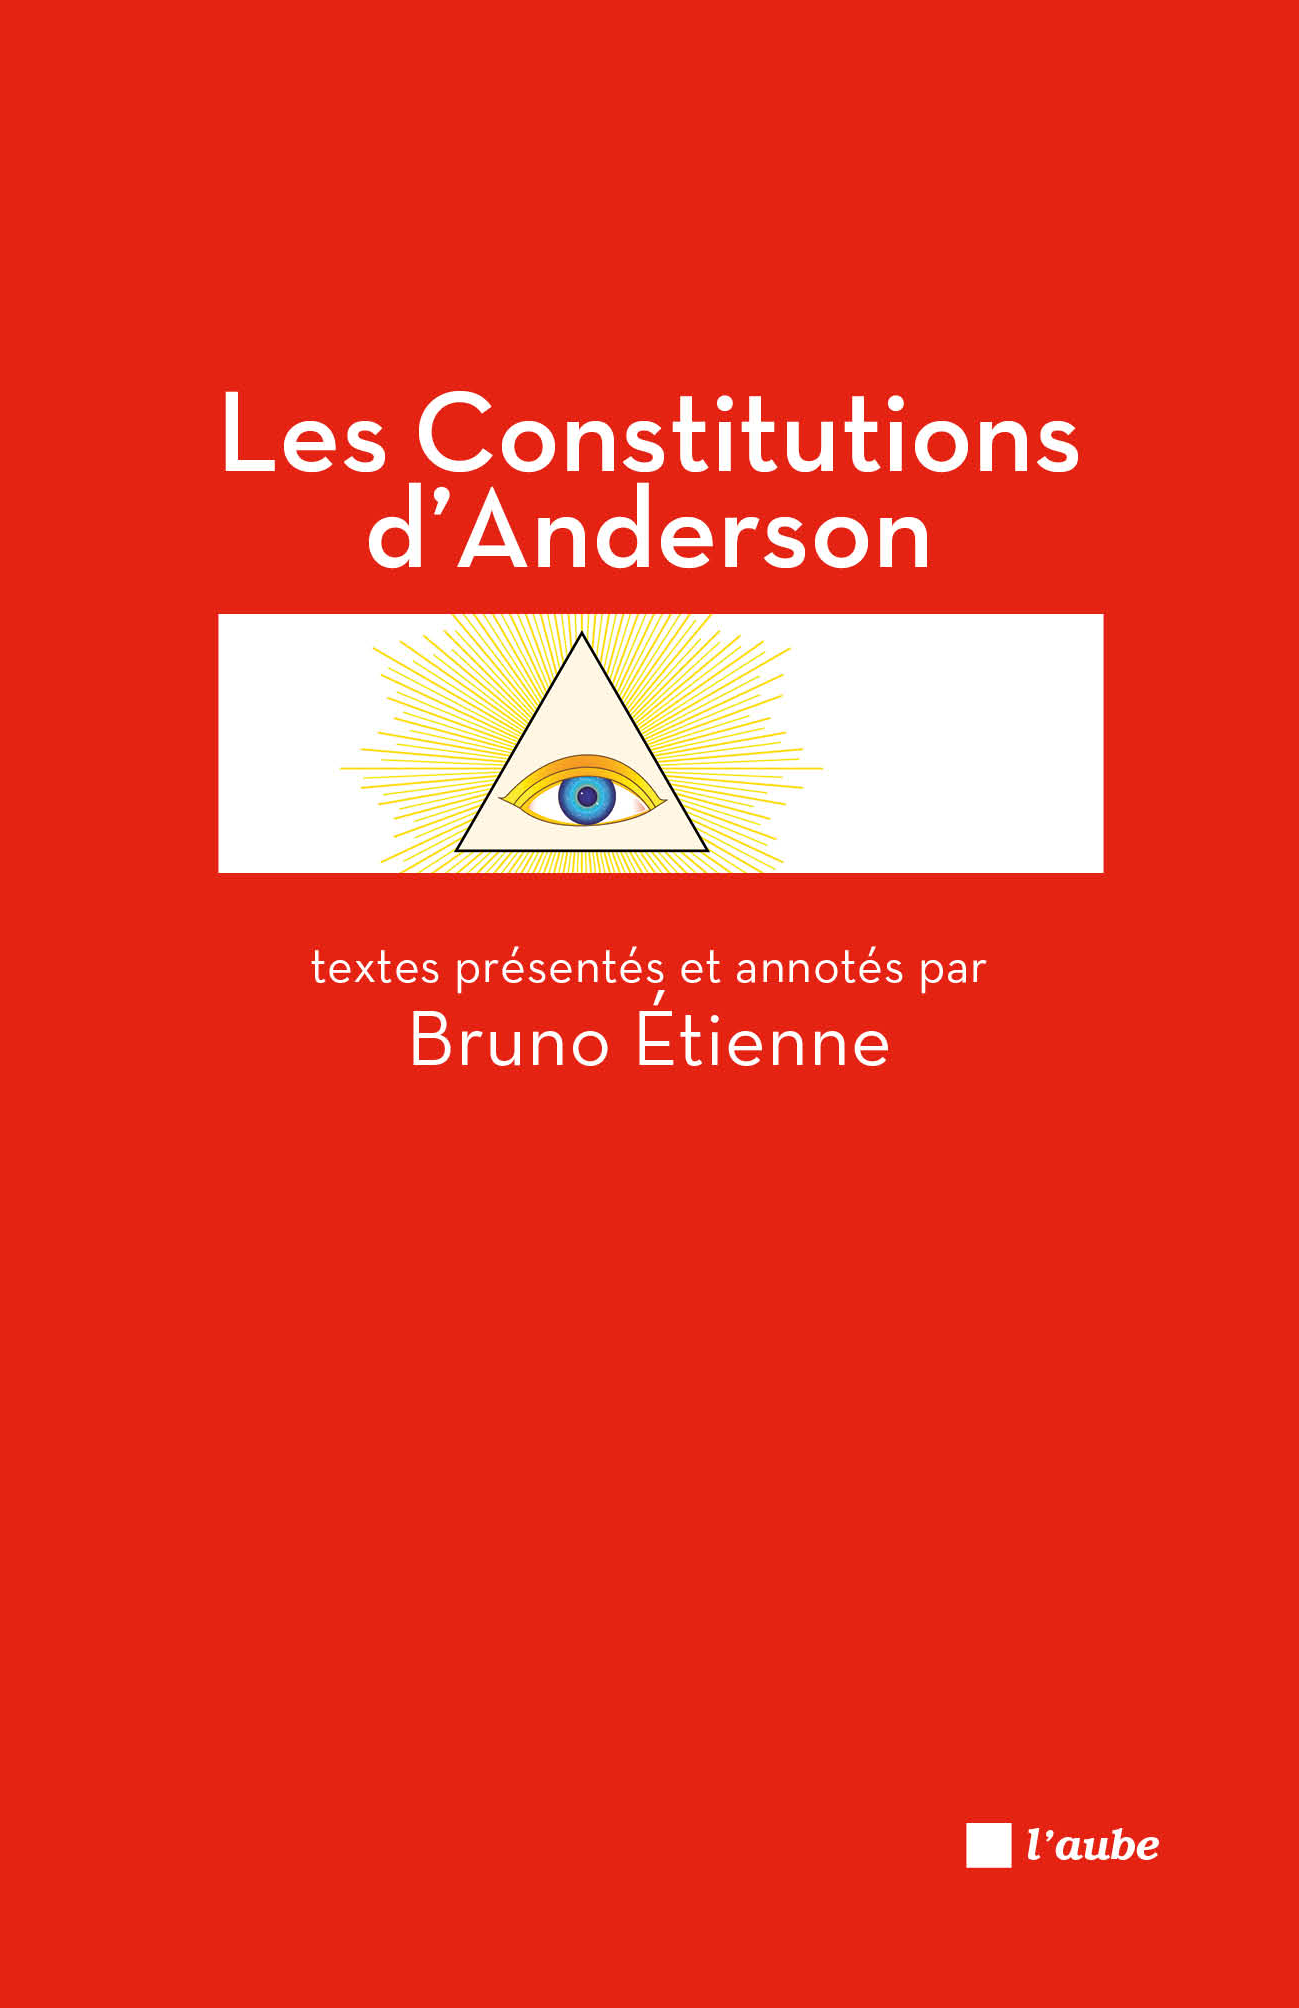 Les Constitutions d'Anderson